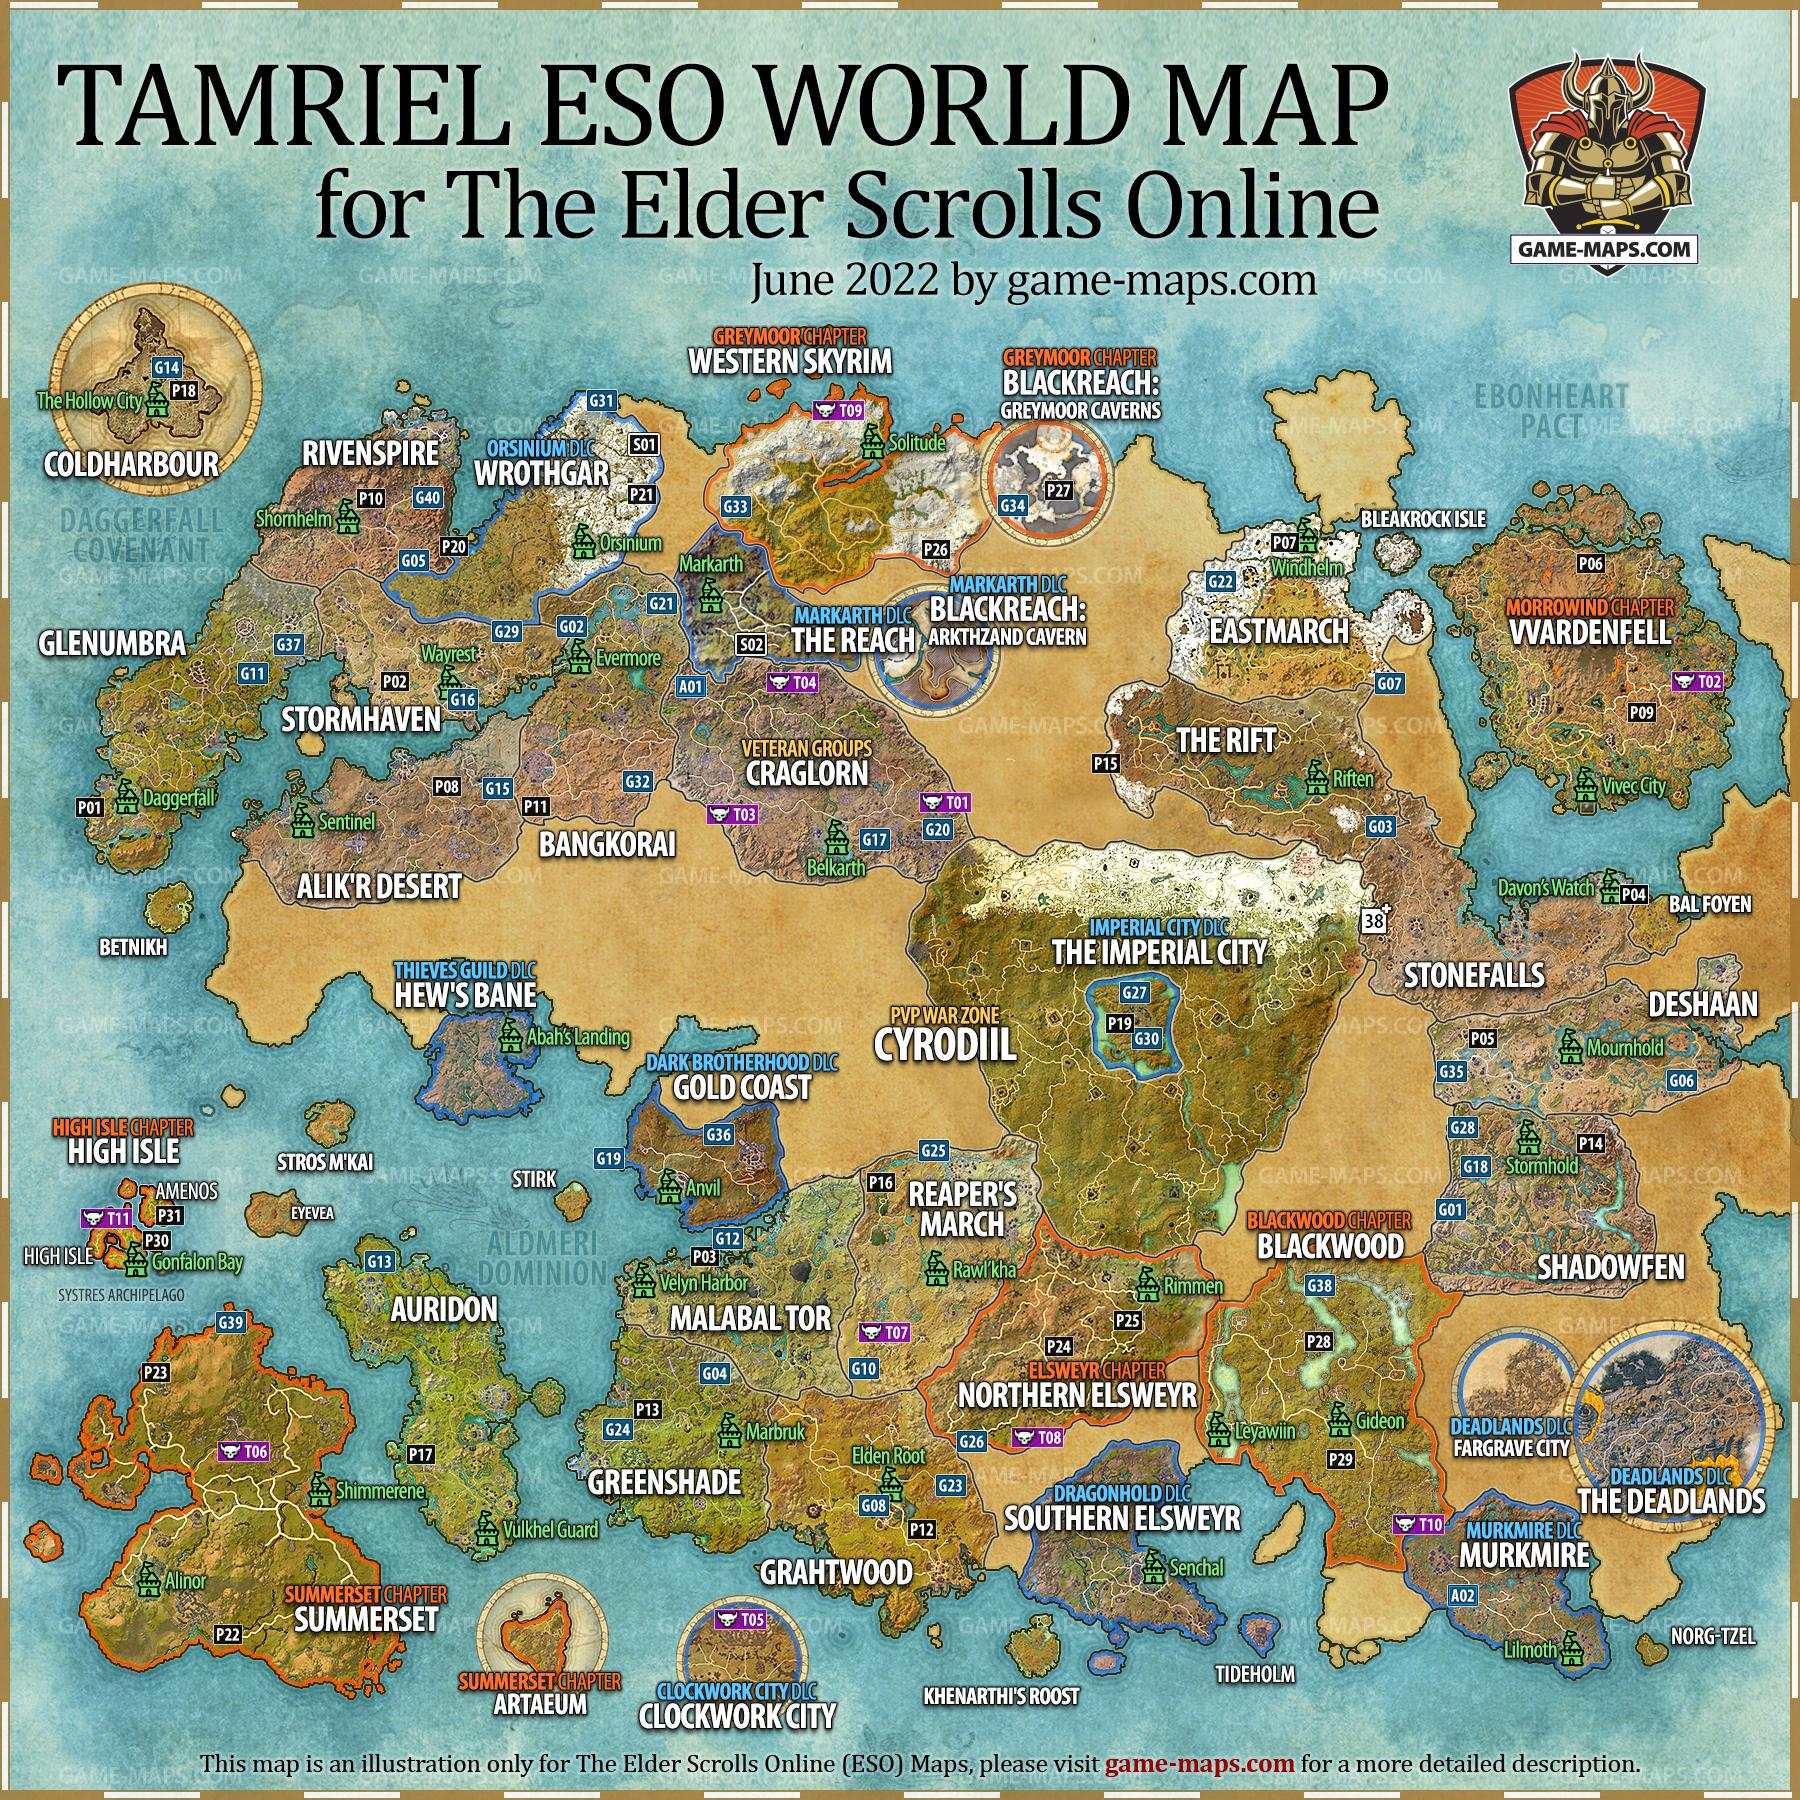 Eso maps the elder scrolls online walkthrough game guide game world map of tamriel for the elder scrolls online eso video game gumiabroncs Choice Image